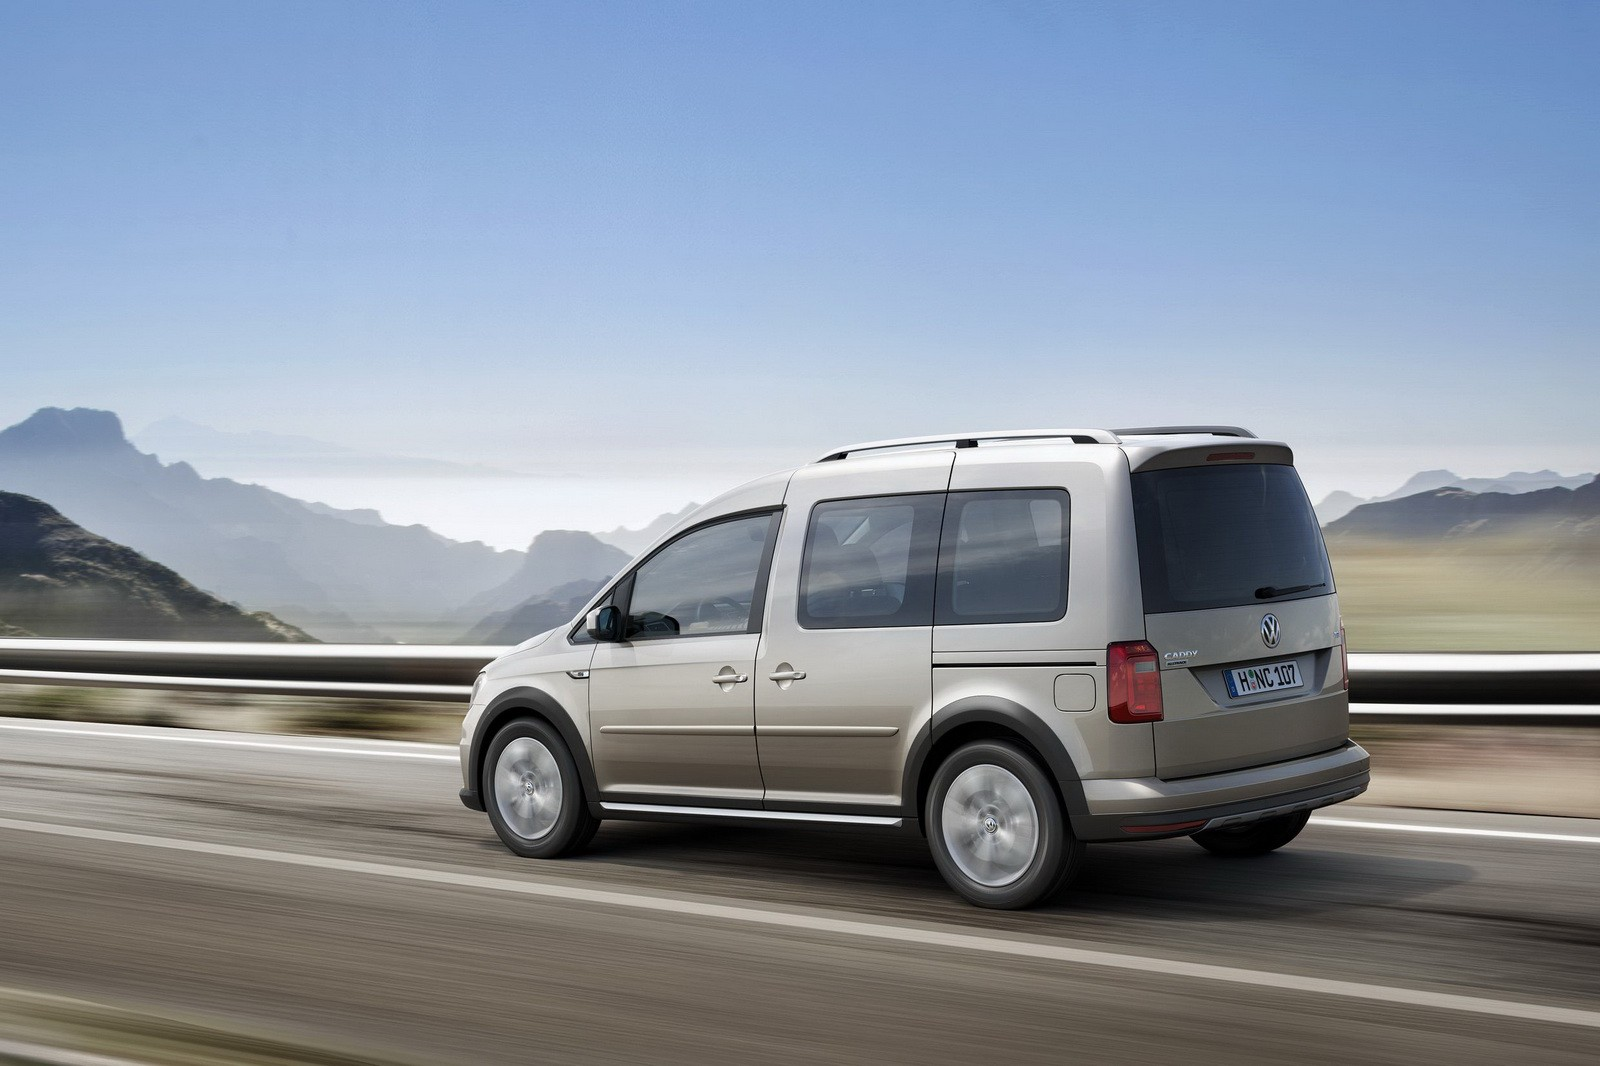 Volkswagen Unveils All-New Caddy Alltrack with Rugged Looks and 4Motion AWD - autoevolution